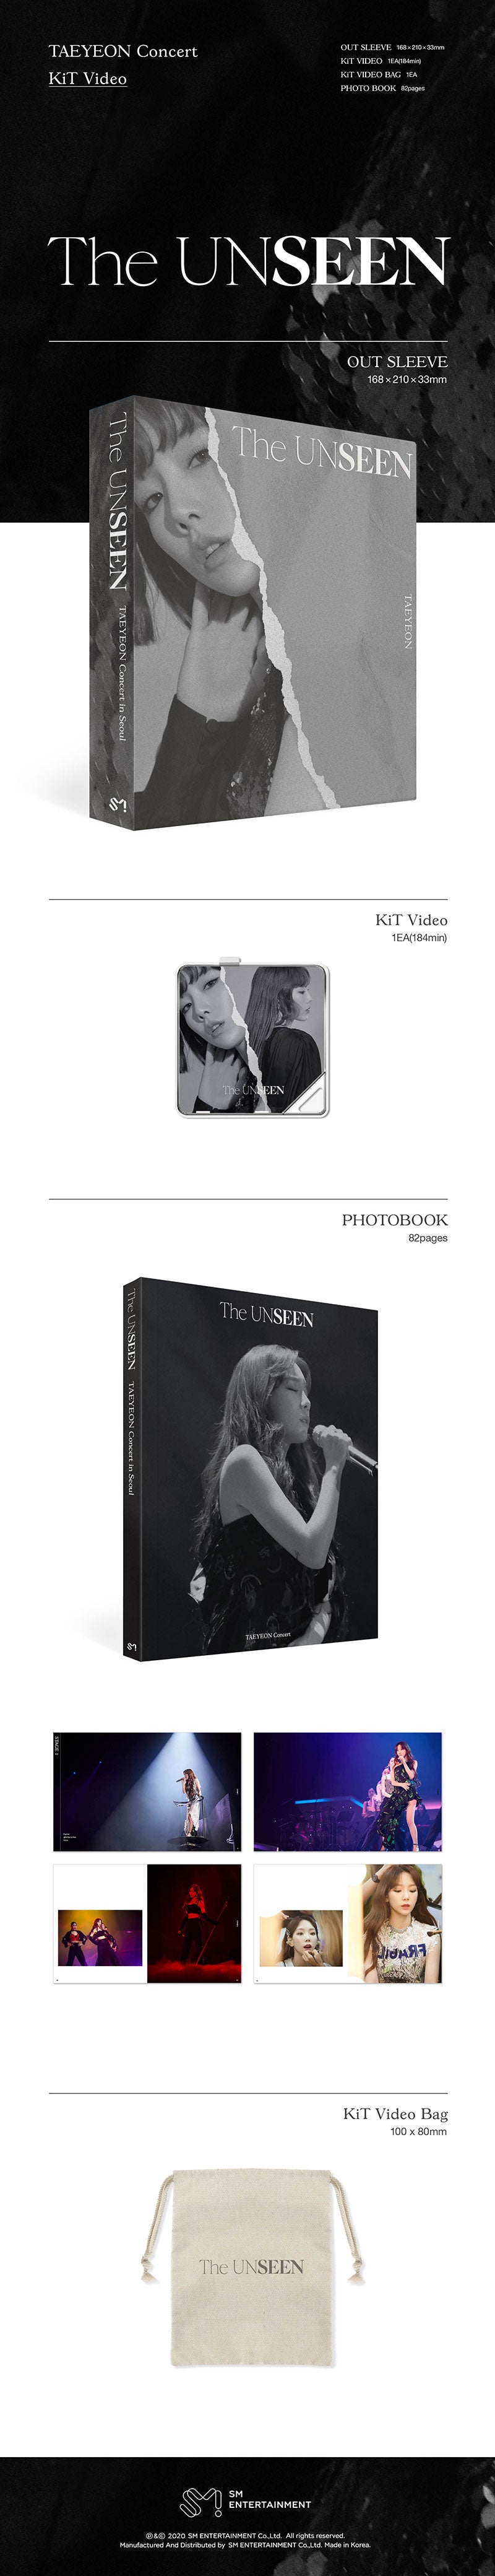 TAEYEON - Concert [The UNSEEN] Kihno Kit Video